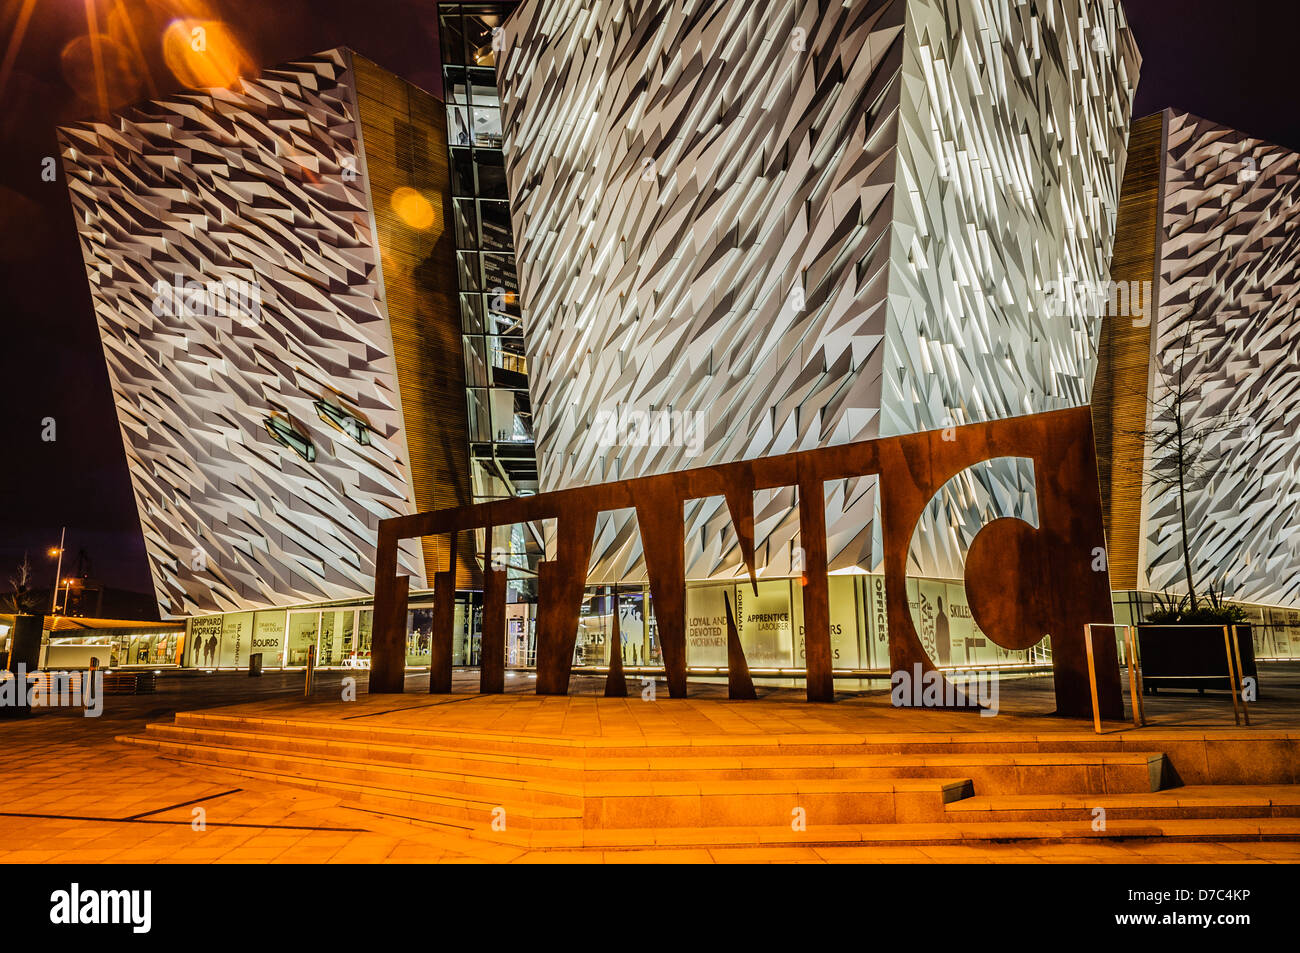 Titanic Building, Belfast, at night - Stock Image